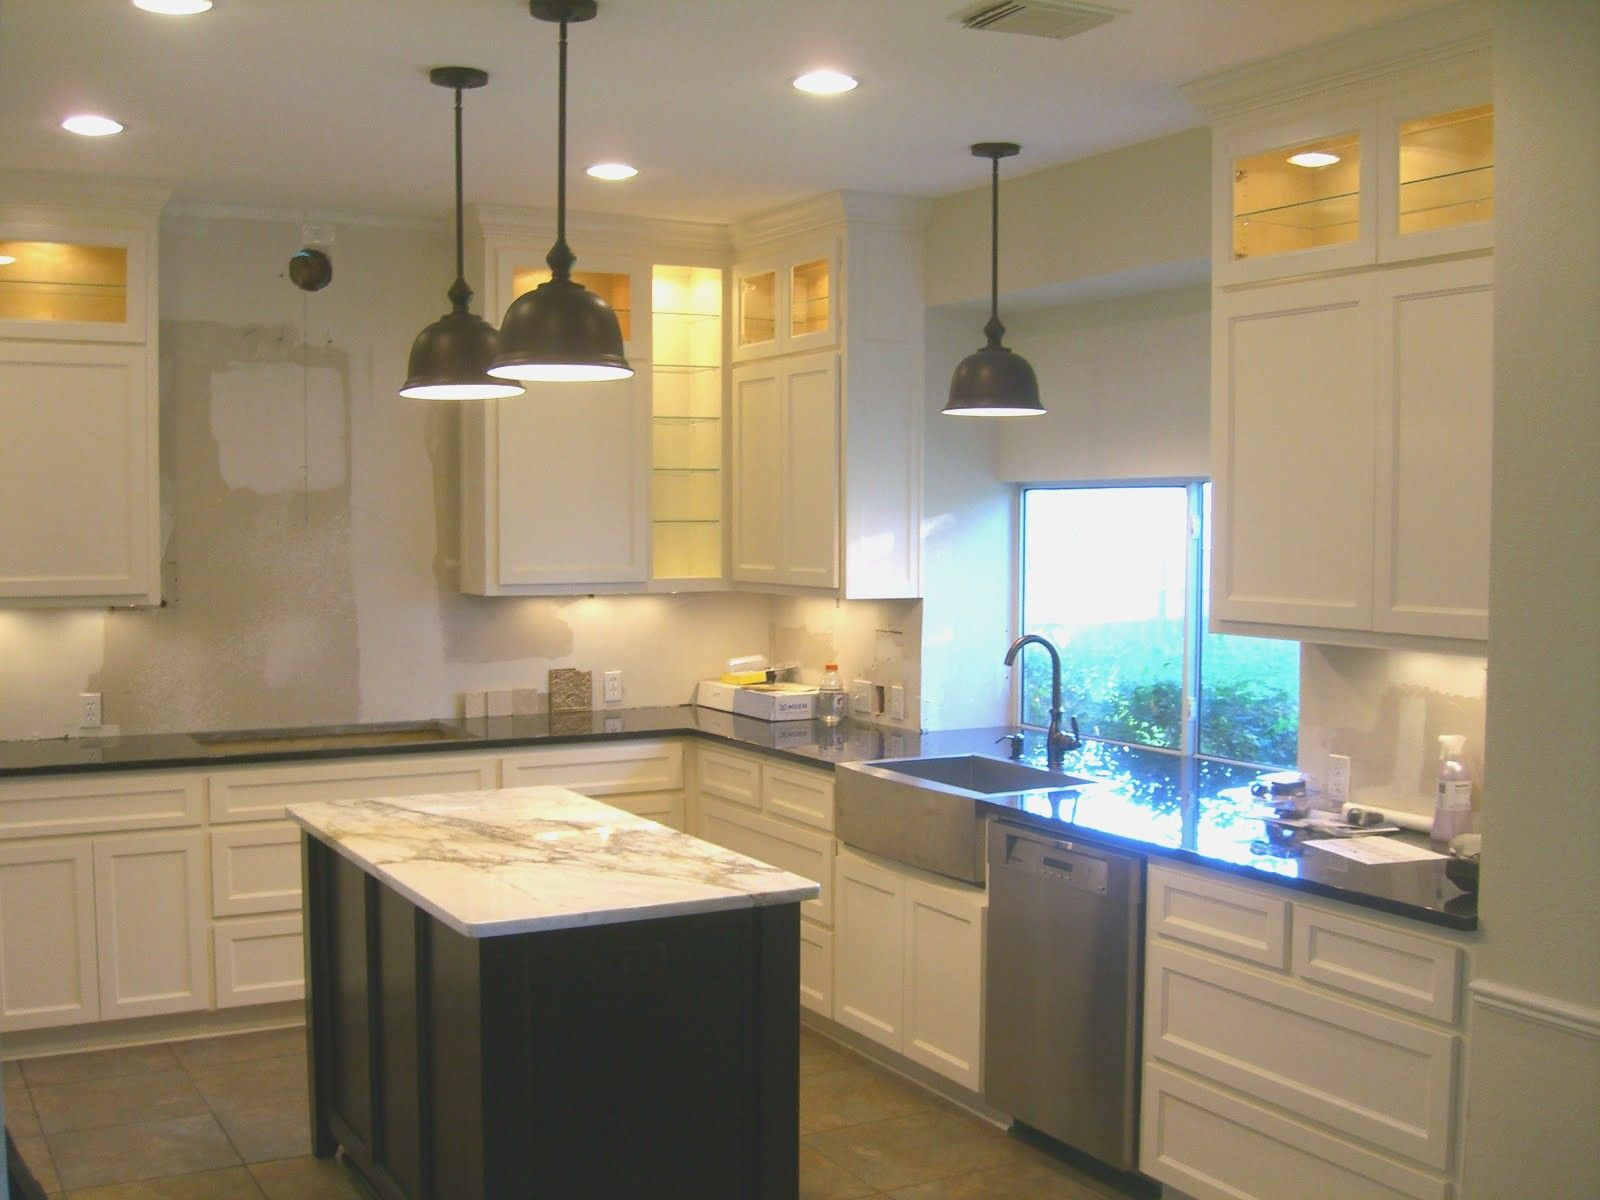 Kitchen Ceiling Fans With Lights Flush Mount Kitchen Ceiling Fans - Flush mount kitchen ceiling fans with lights